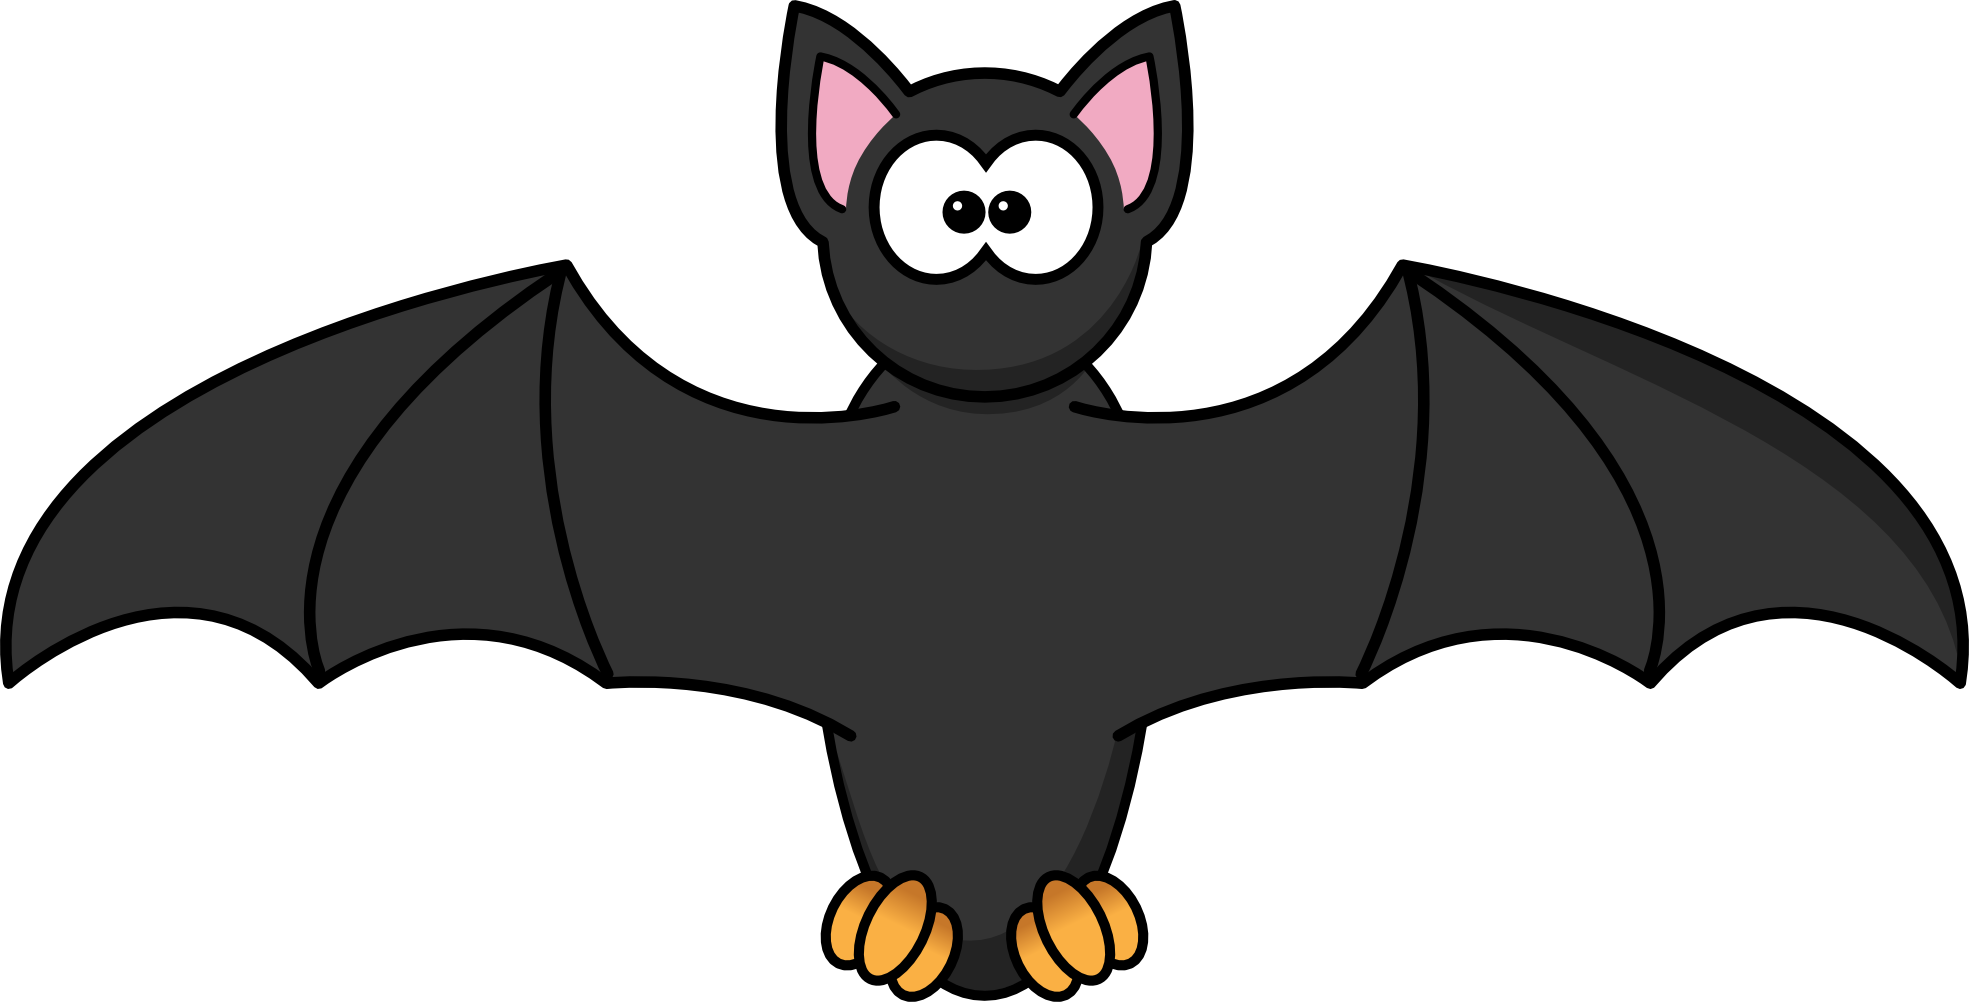 Halloween Bat Clipart - Cliparts.co